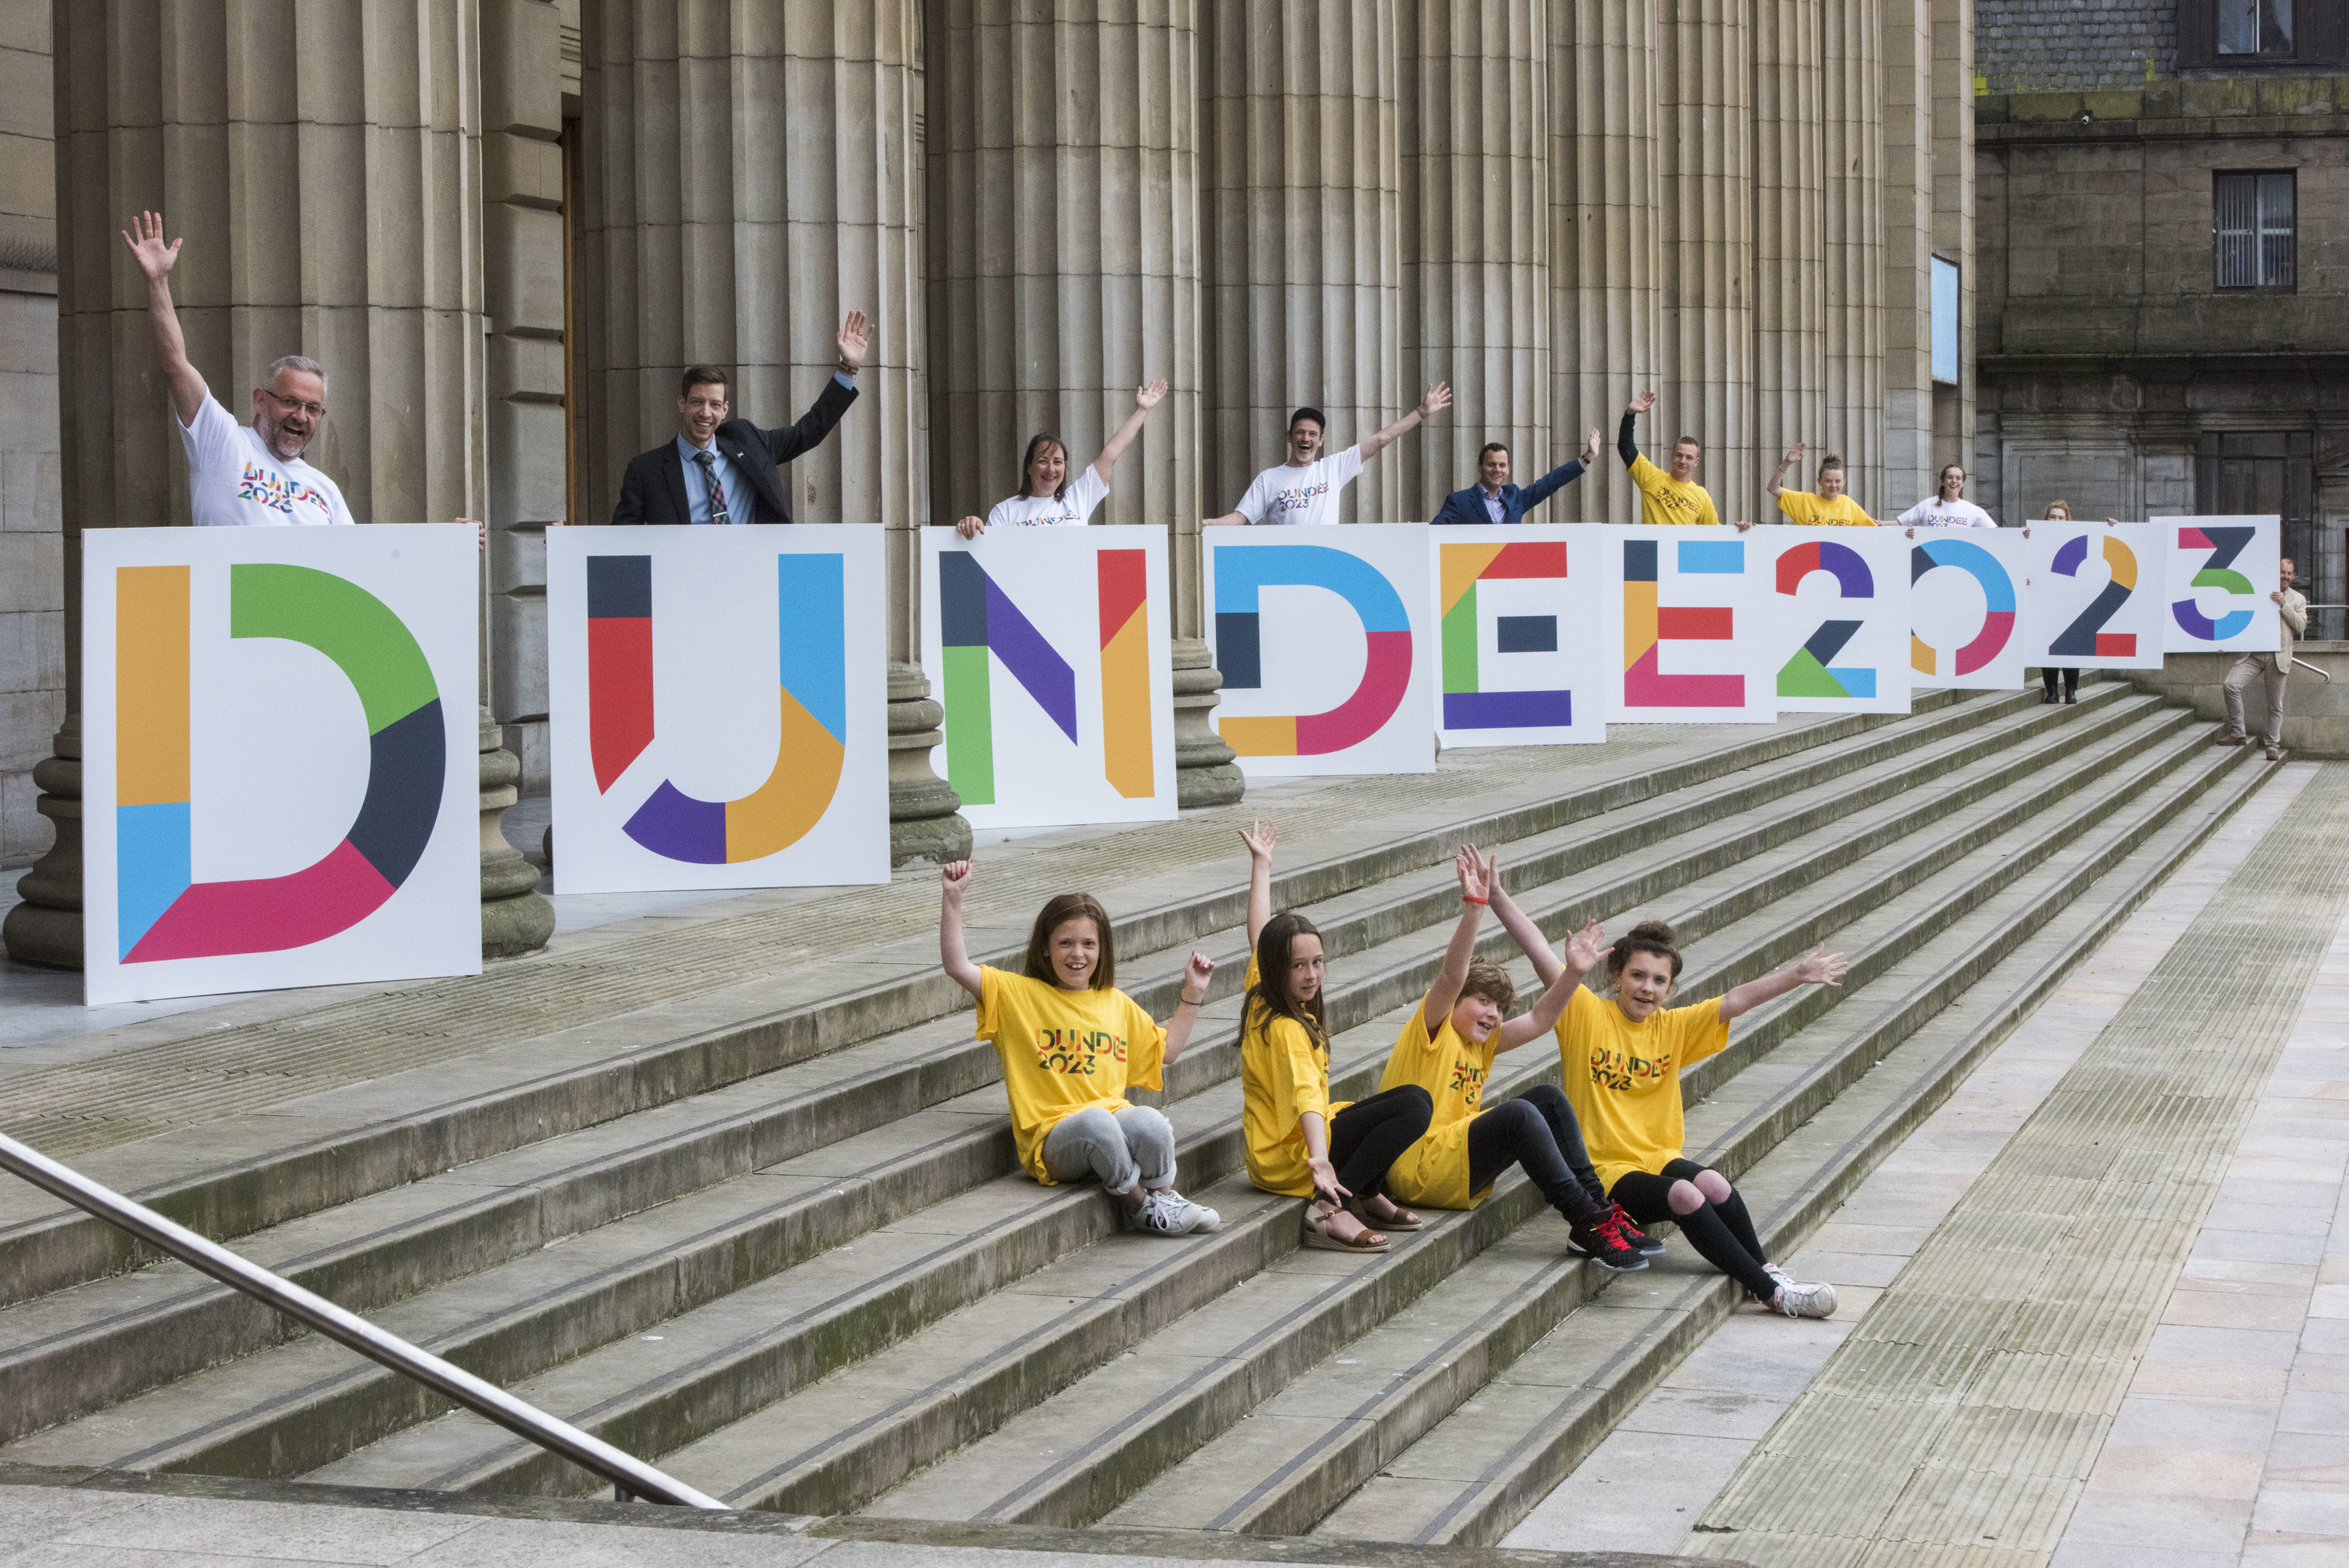 Dundee is competing against cities including Nottingham.